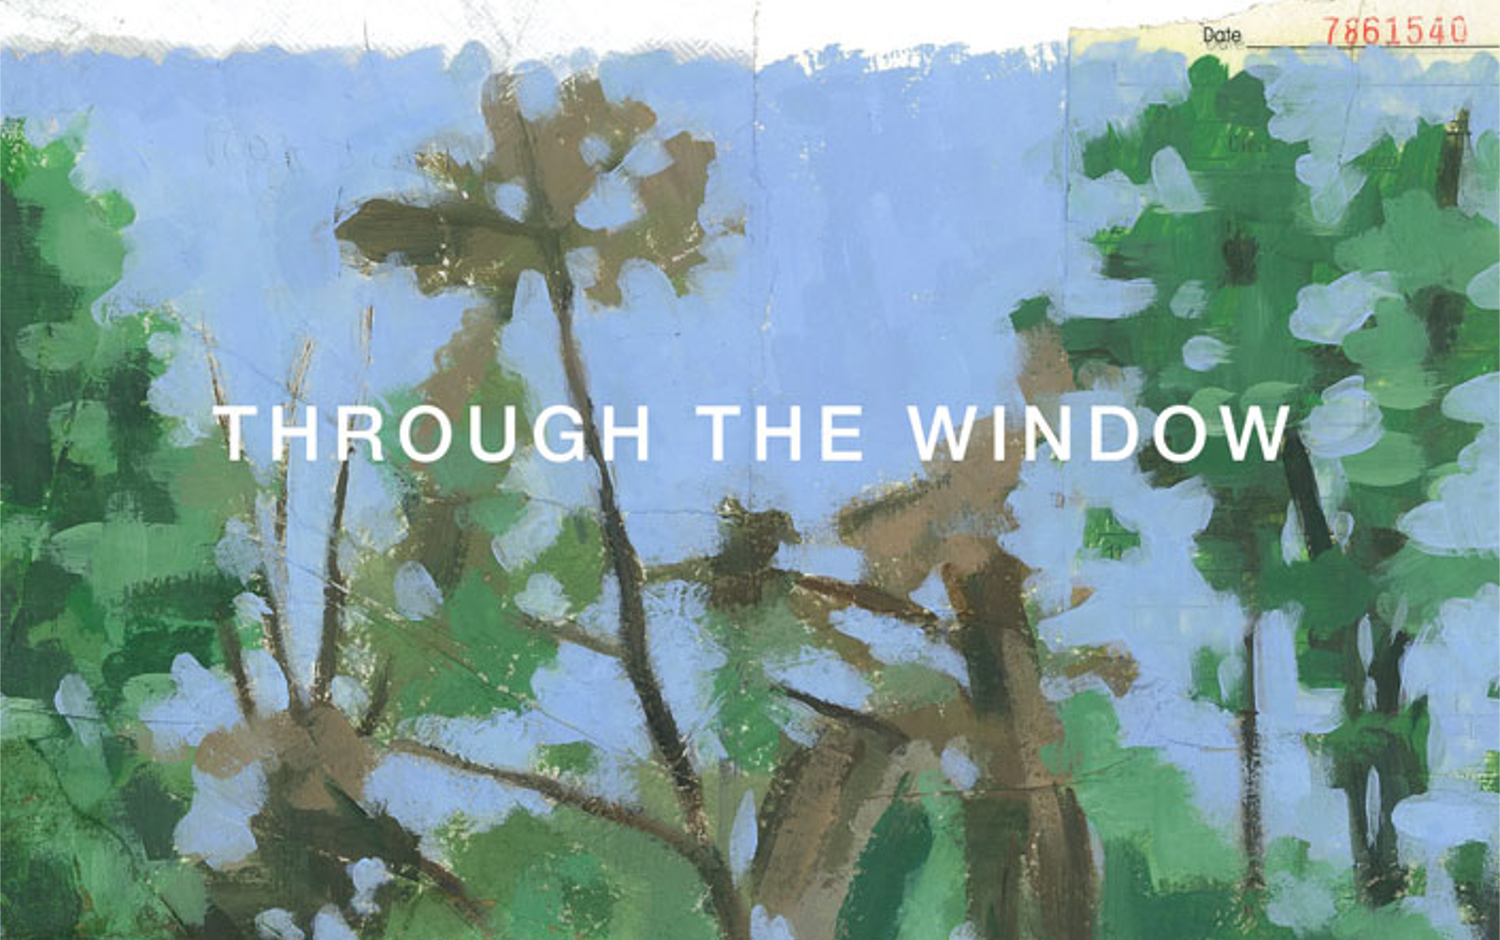 個展「THROUGH THE WINDOW」by Koji Yamaguchi